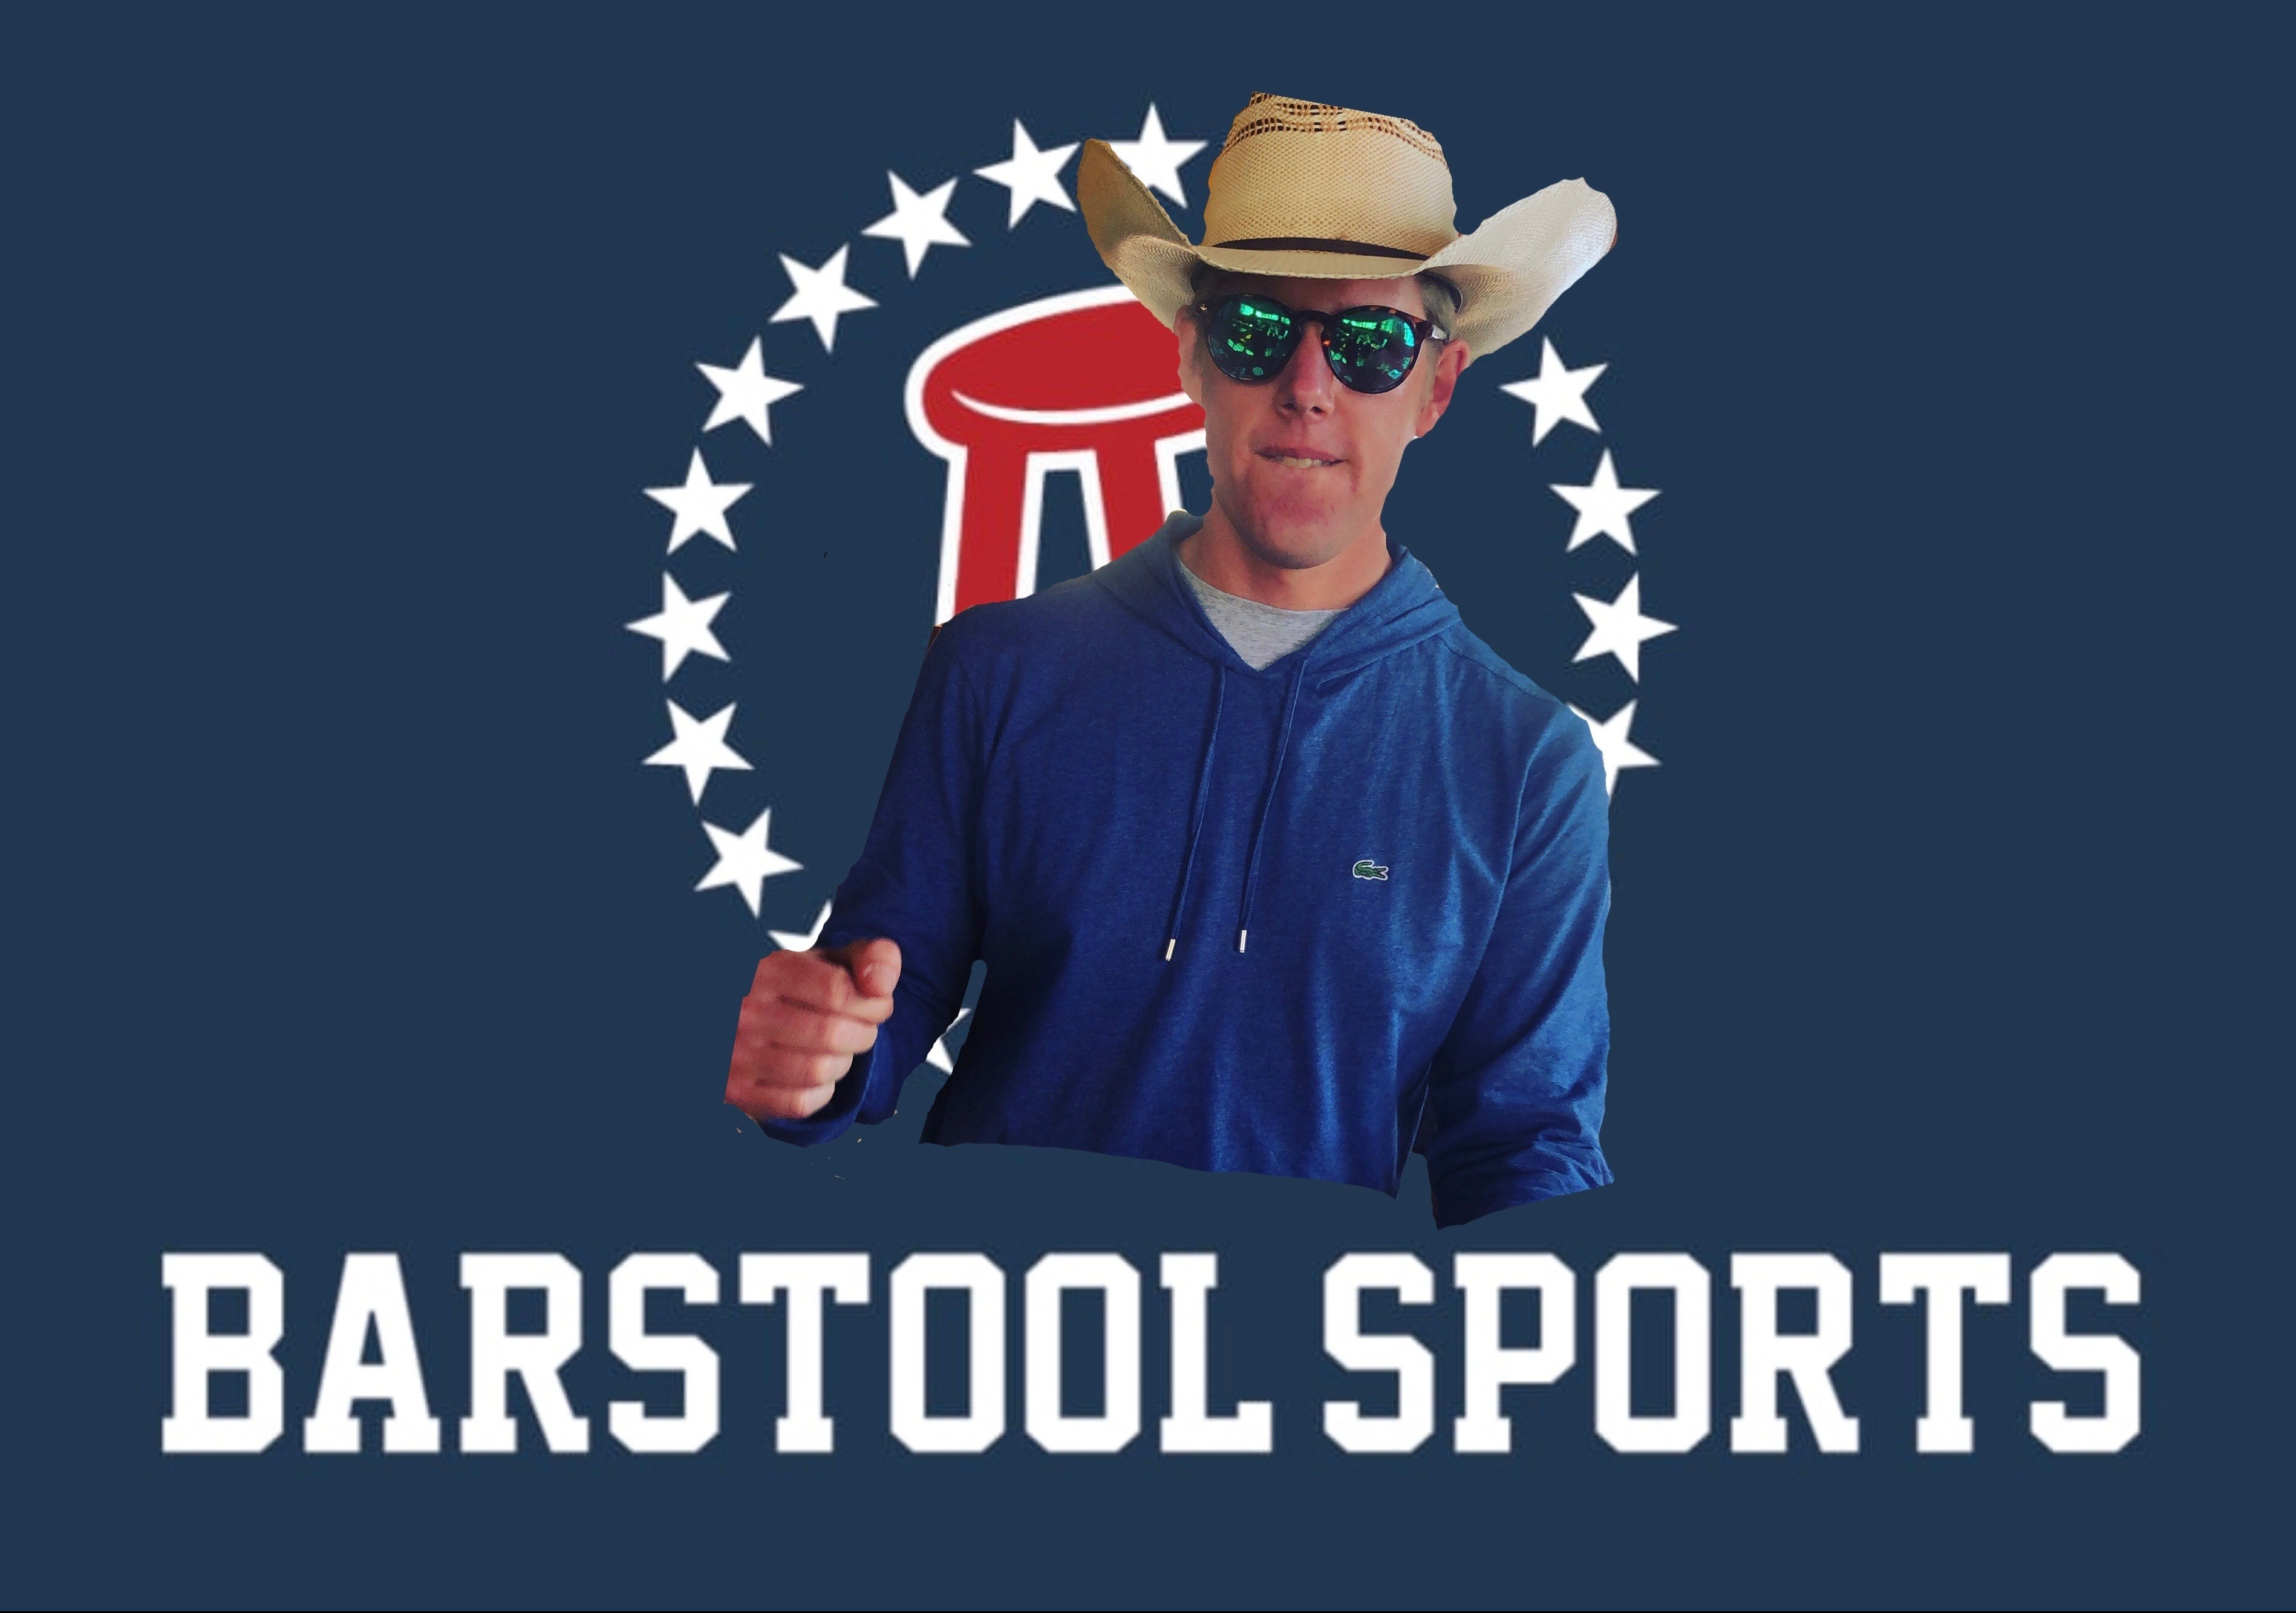 SSG is on Barstool Sports